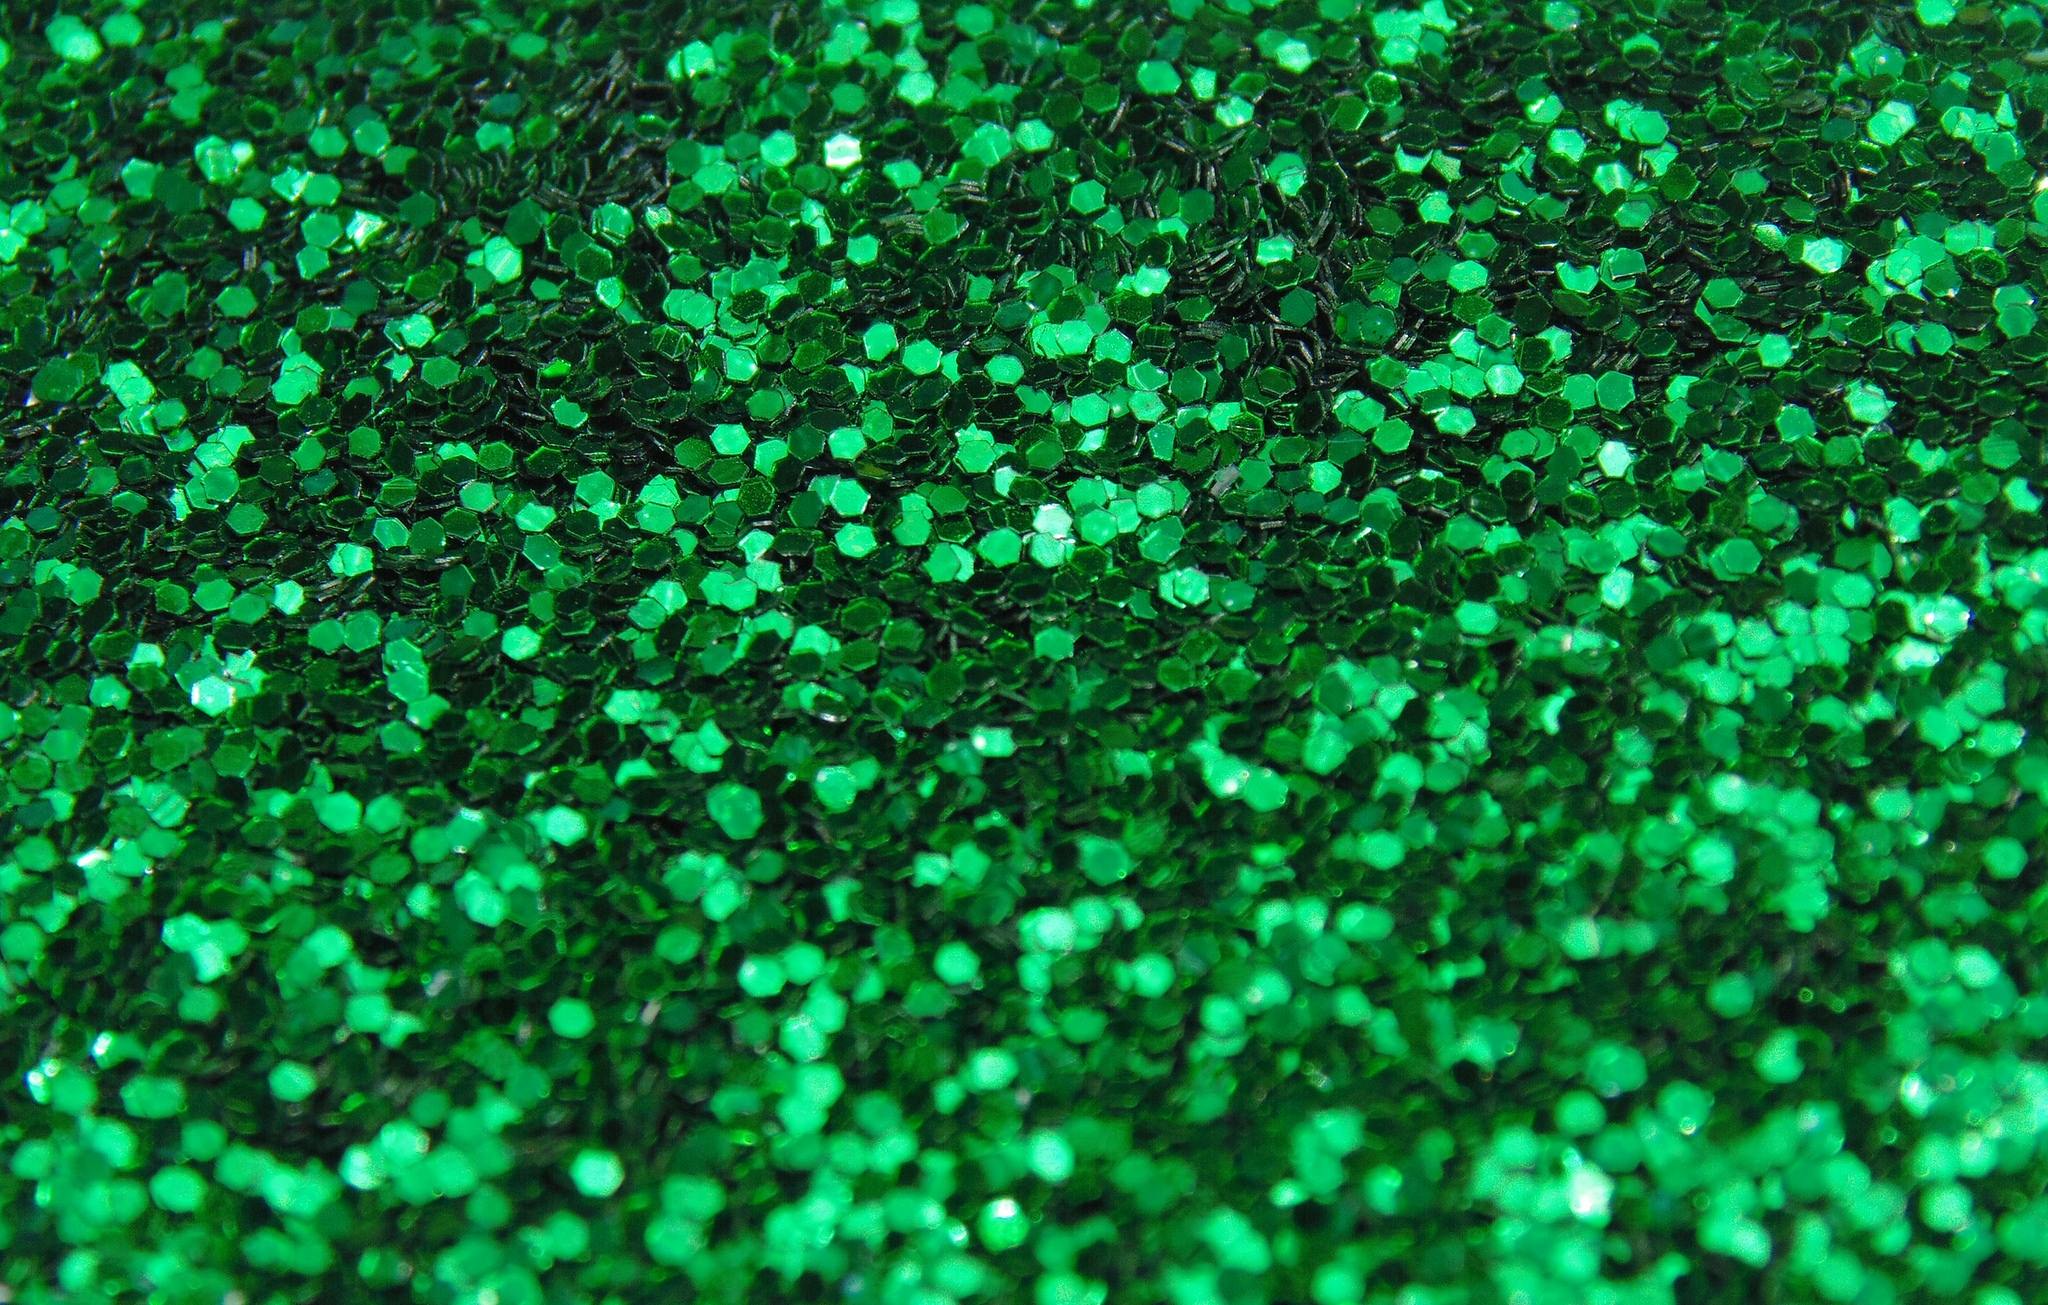 green sparkle background - photo #1